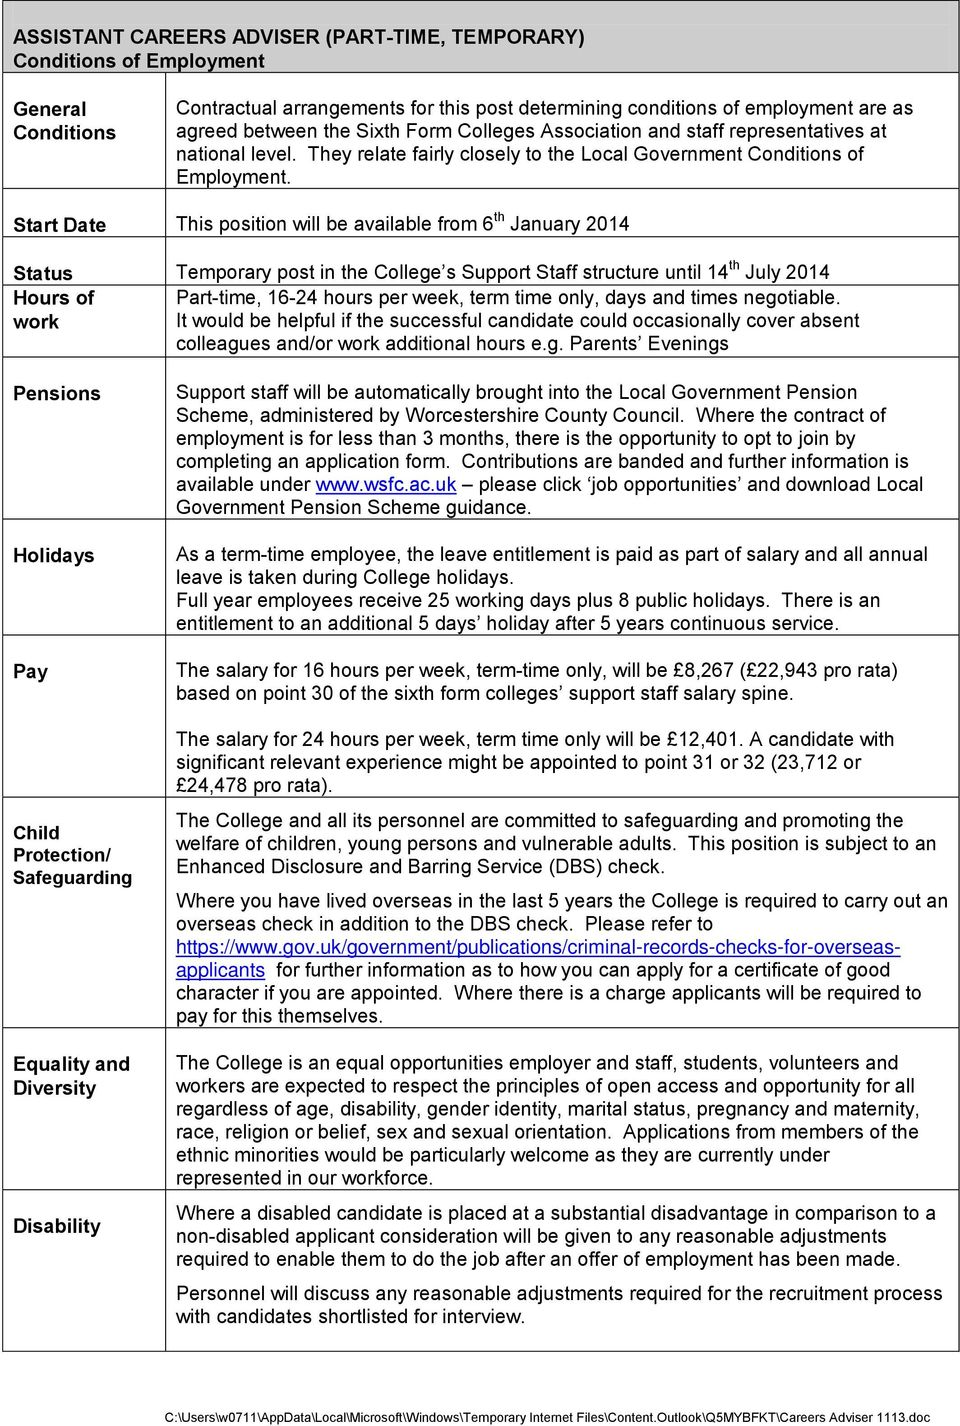 Start Date This position will be available from 6 th January 2014 Status Temporary post in the College s Support Staff structure until 14 th July 2014 Hours of Part-time, 16-24 hours per week, term